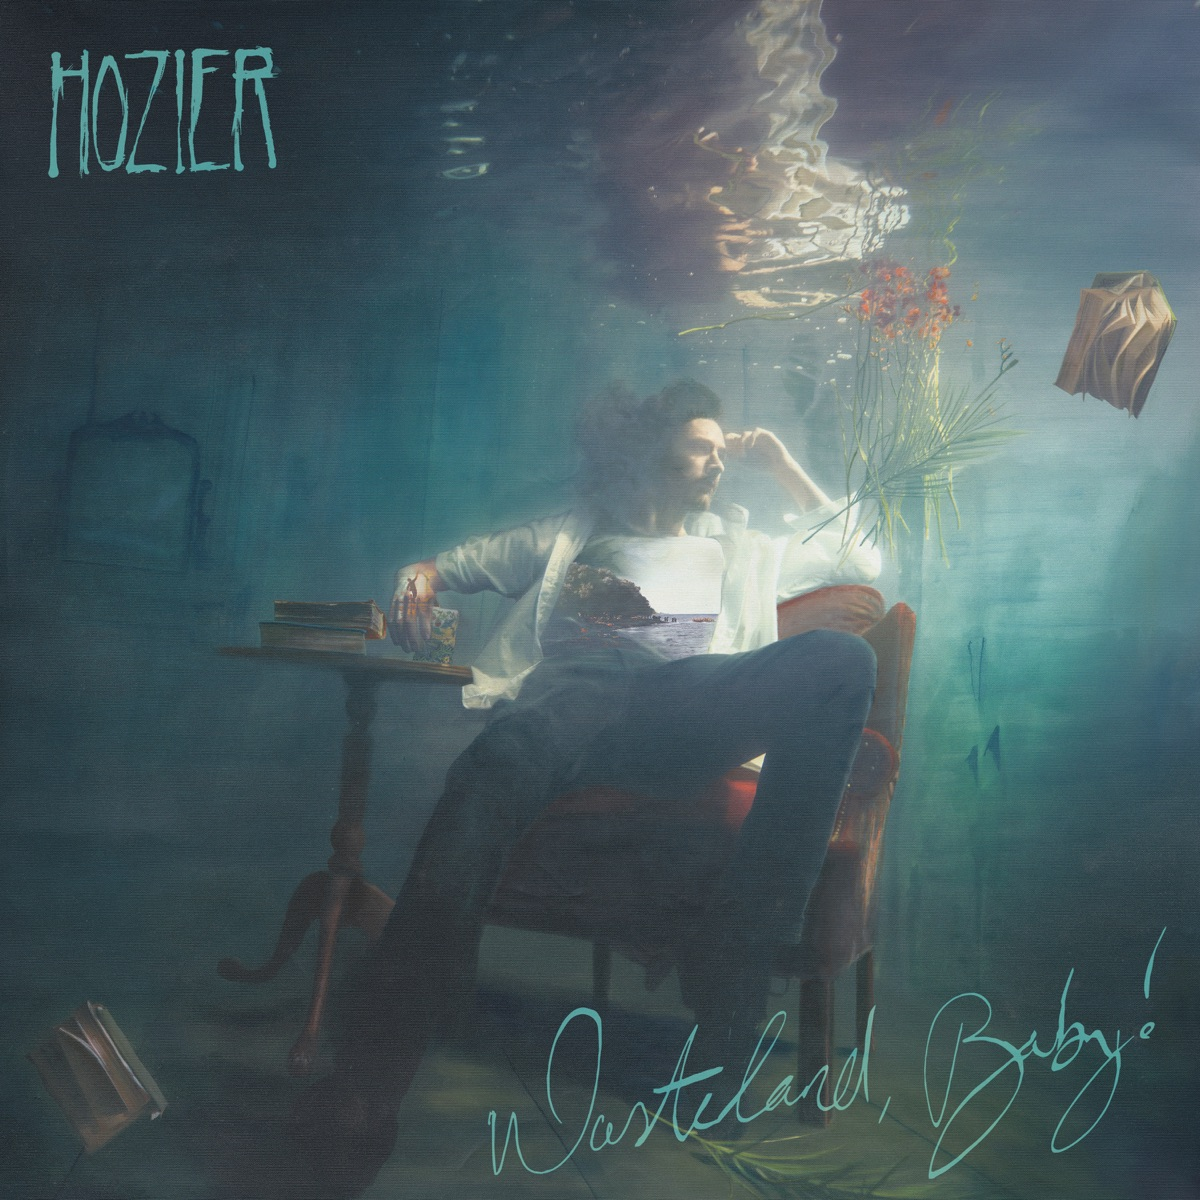 Wasteland Baby Hozier CD cover